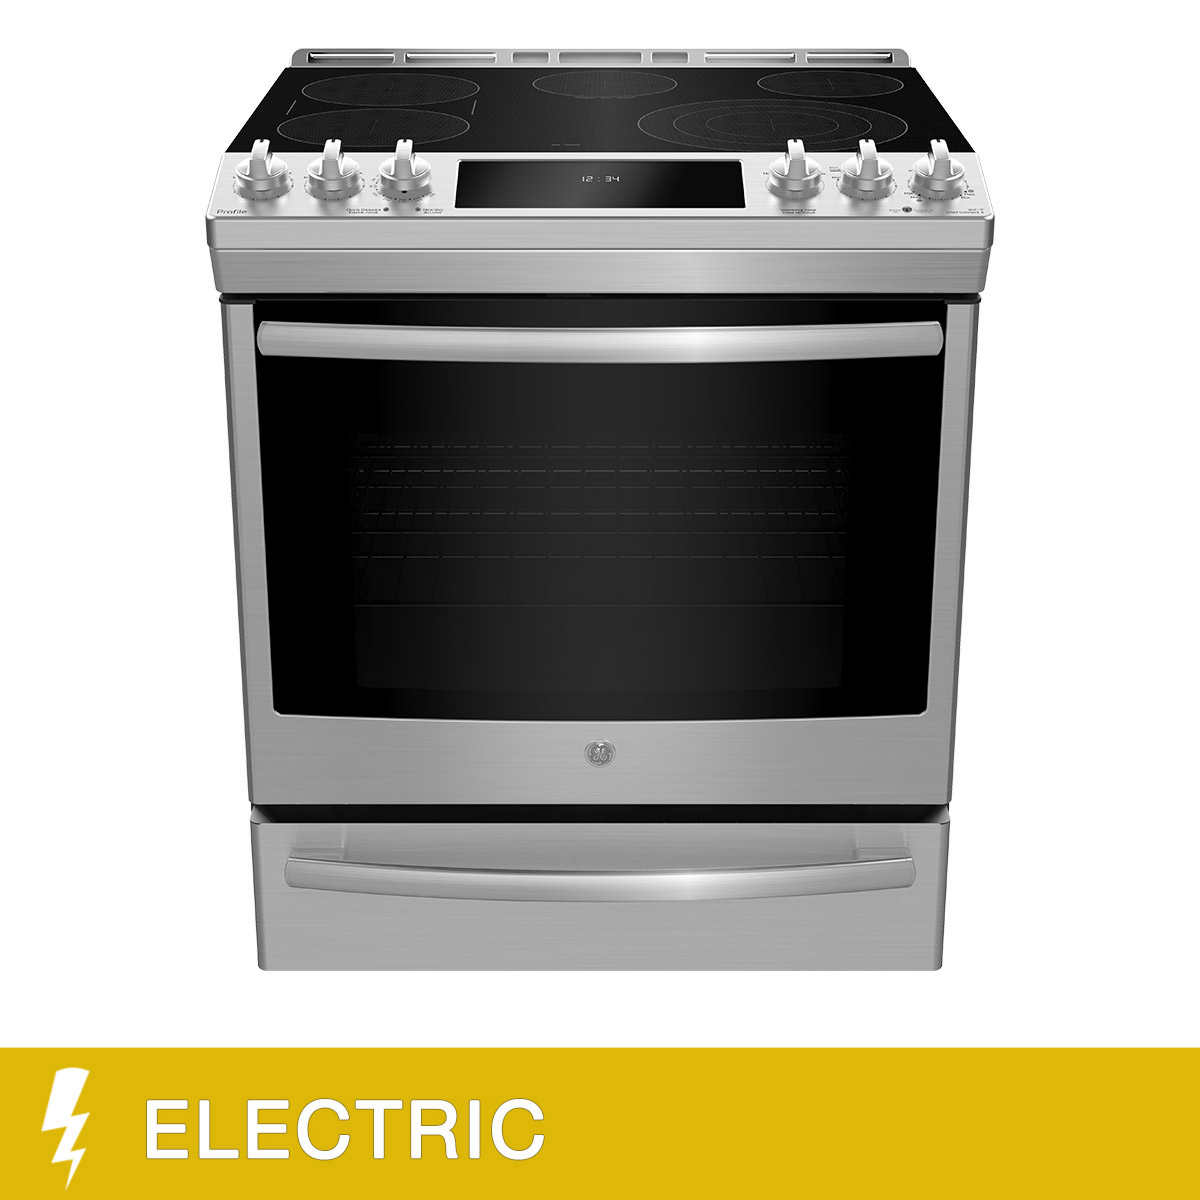 Ge Profile 30 In 6 3cu Ft Slide In Stainless Steel Electric Range With Built In Wi Fi Connection